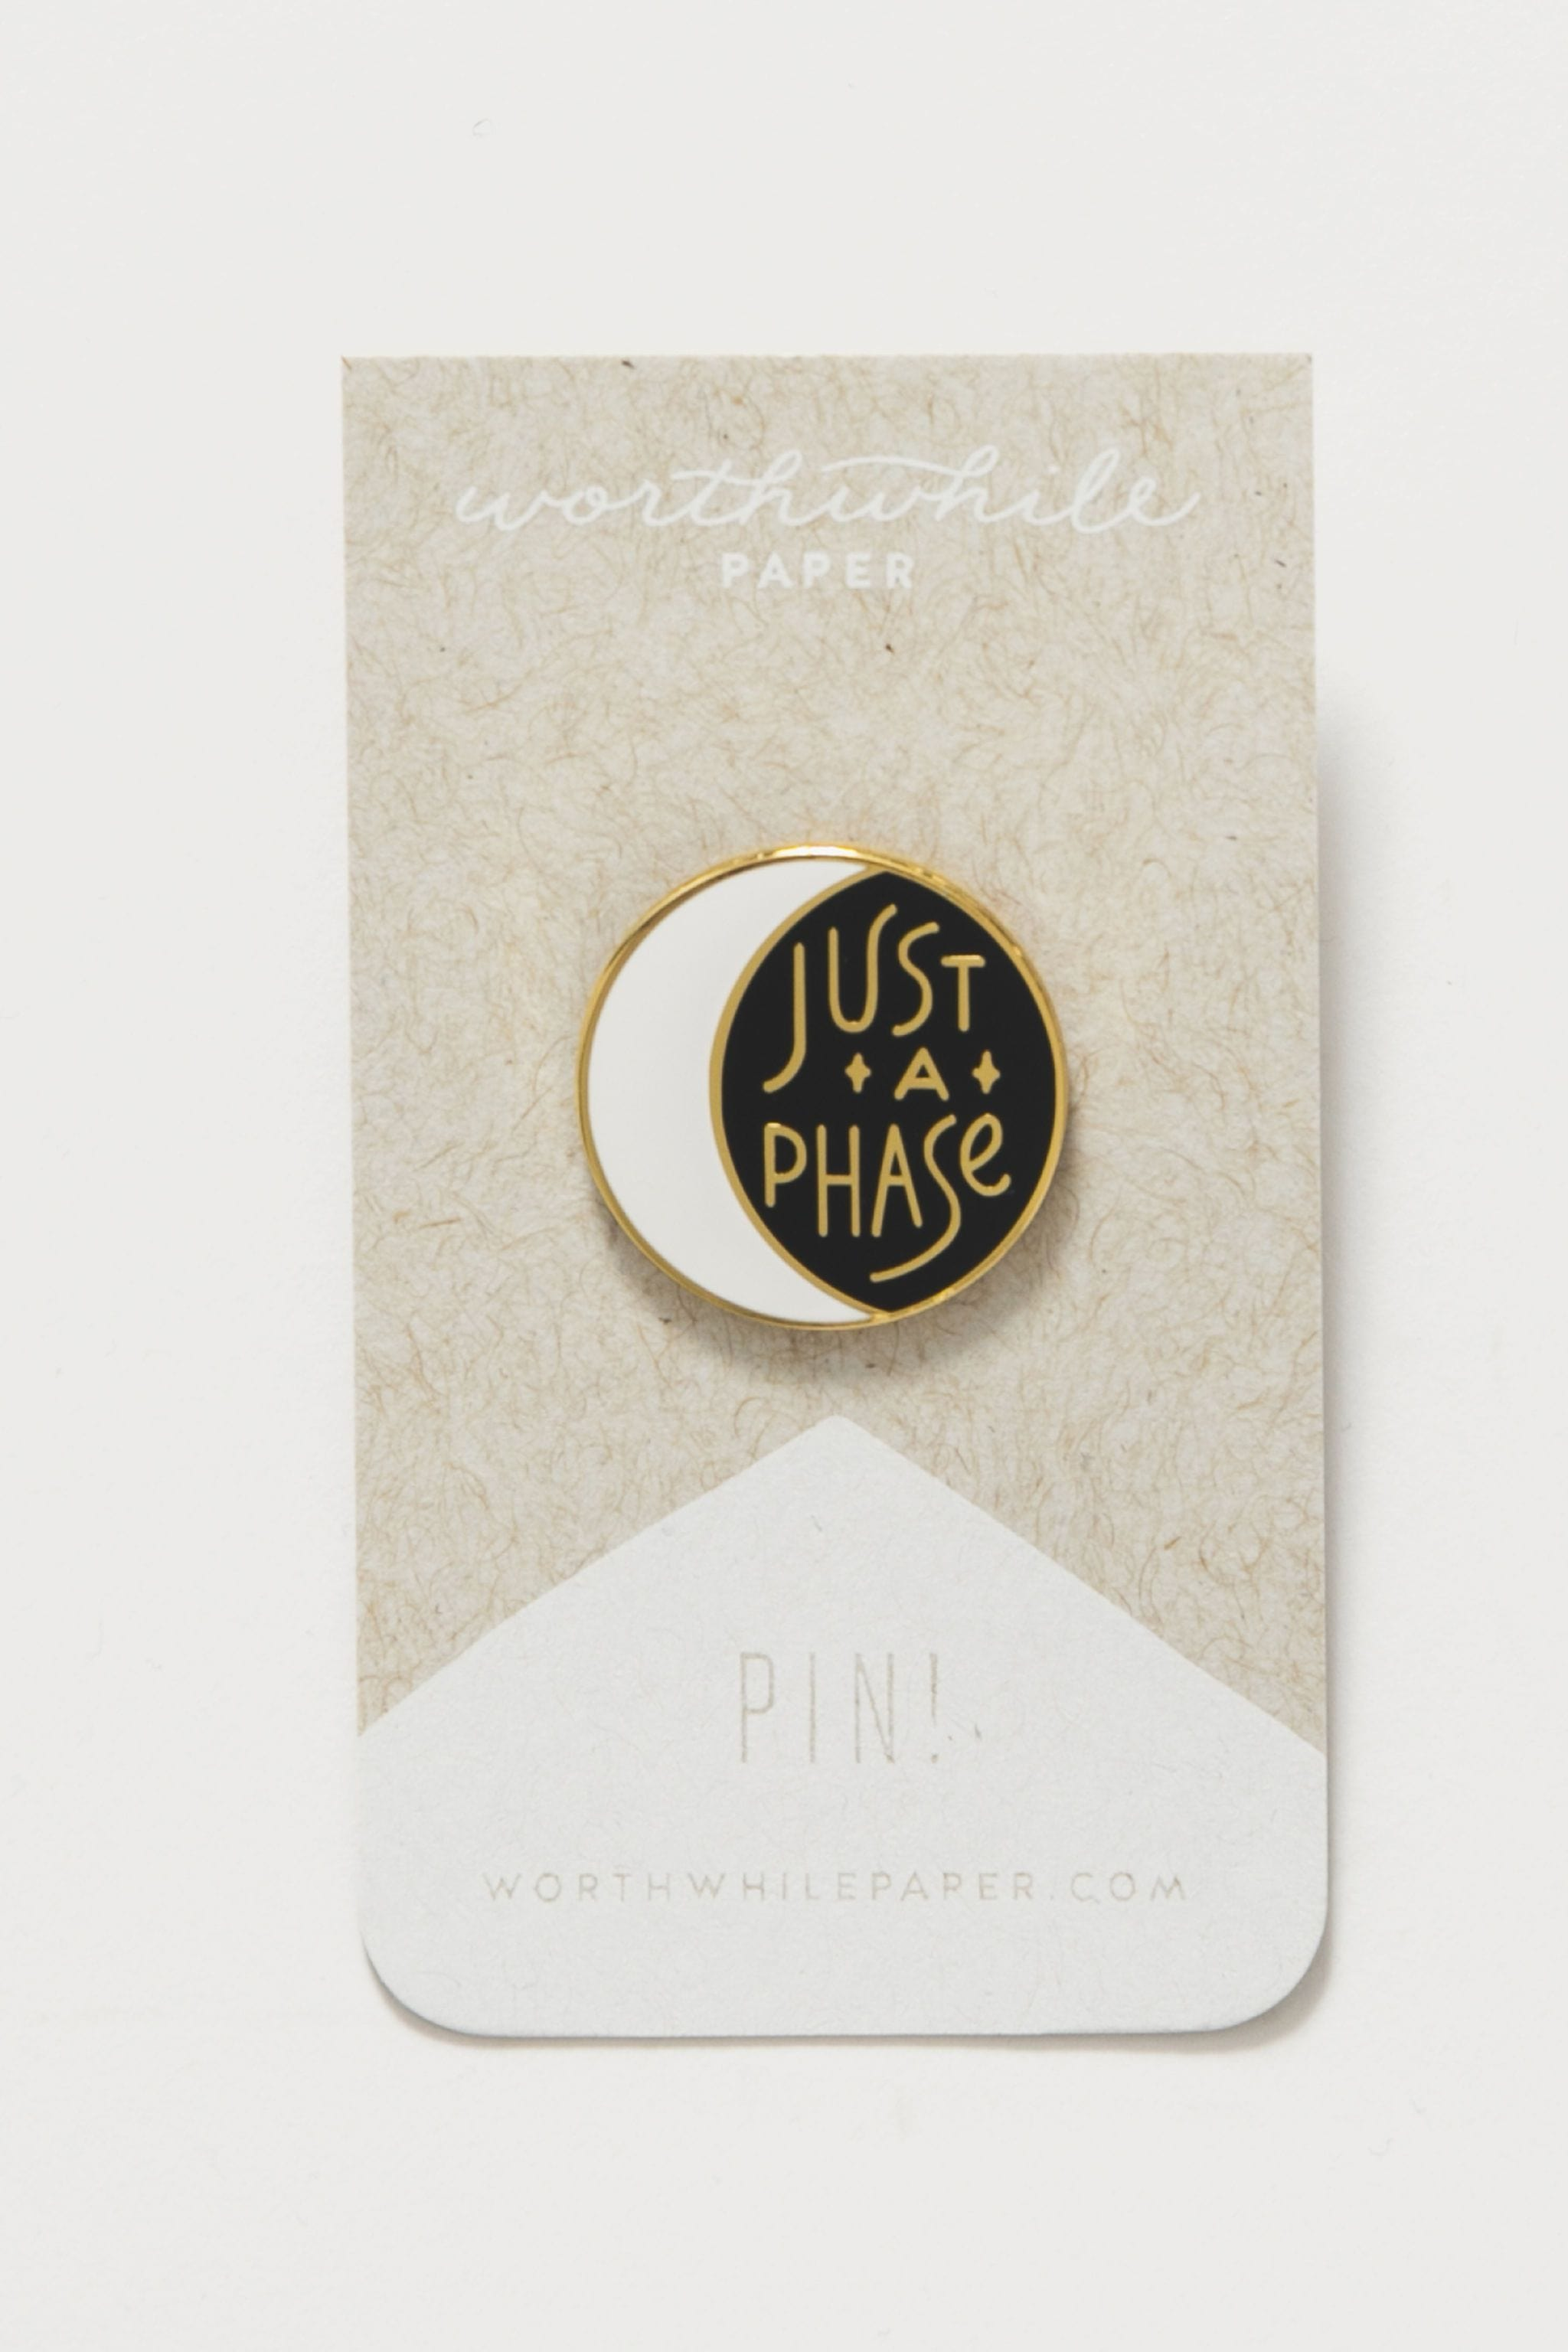 Just a Phase Pin